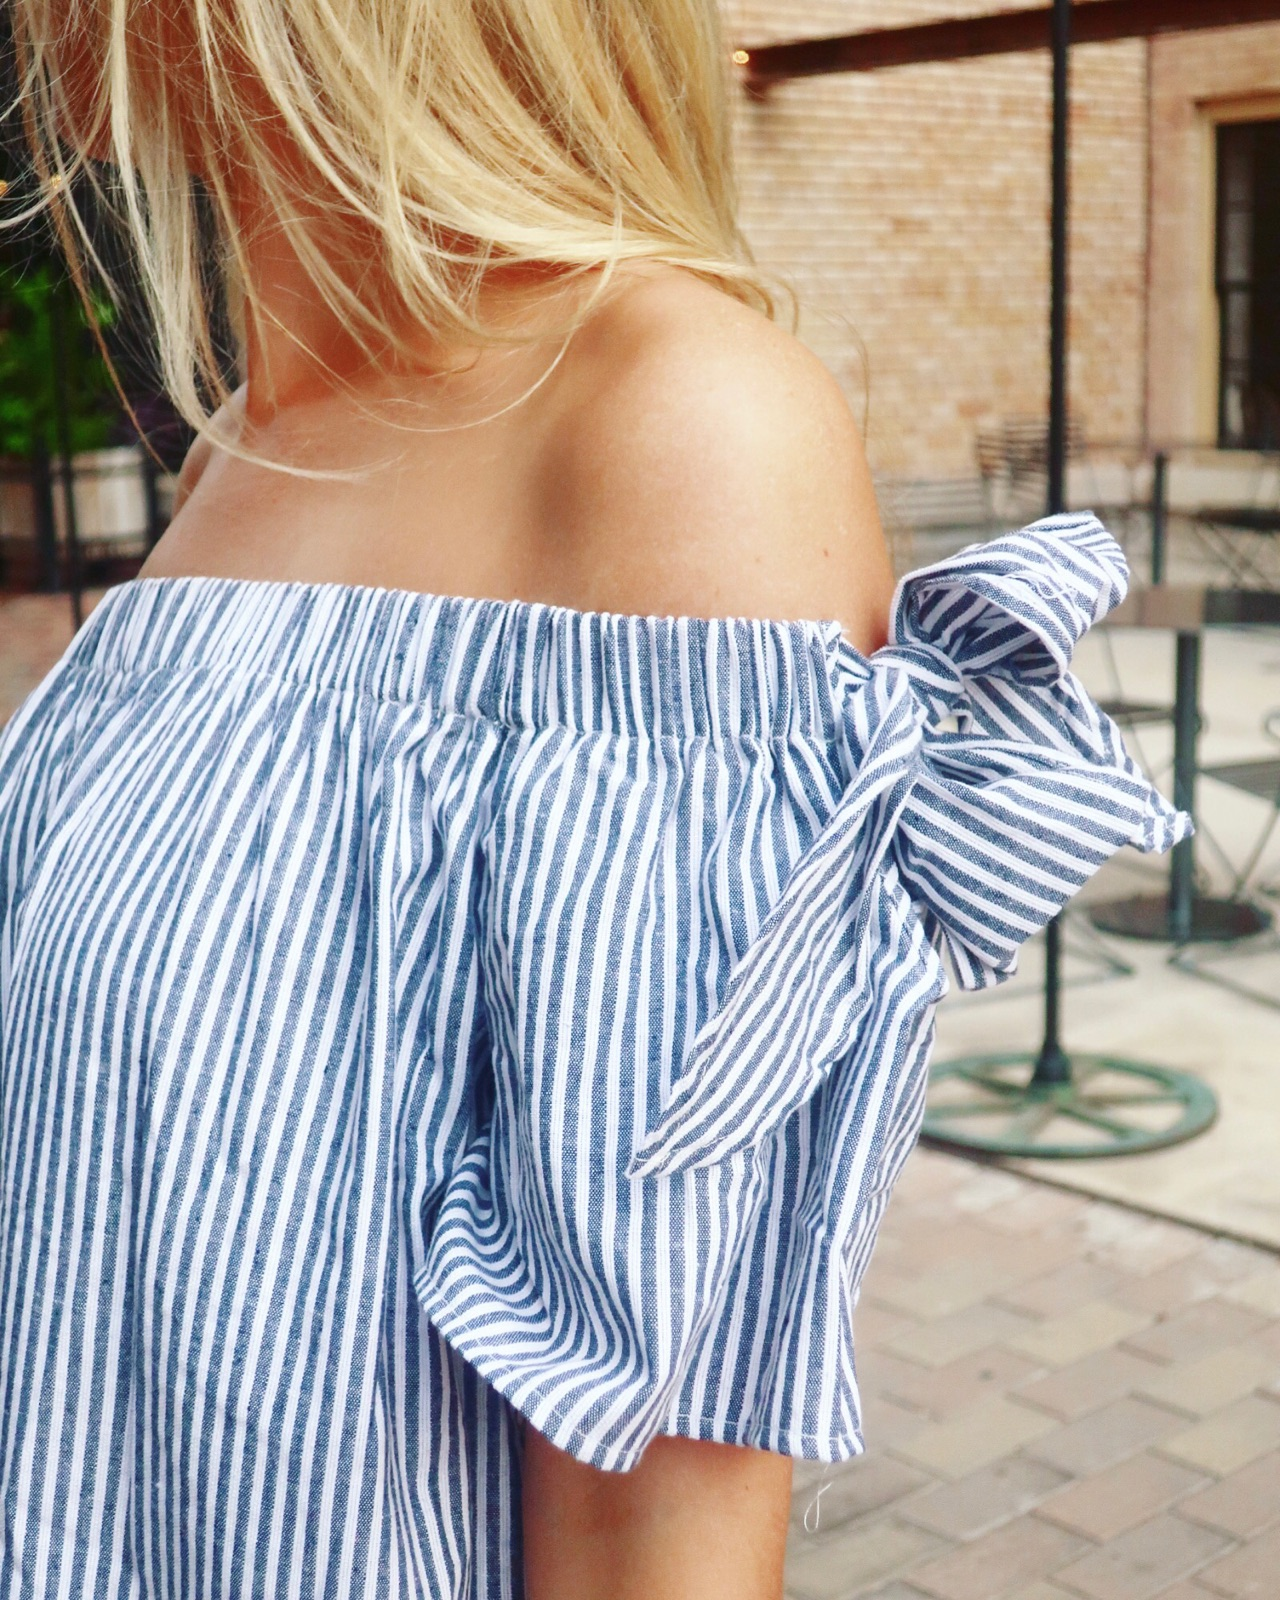 Summer in the Hamptons: Styling Stripes